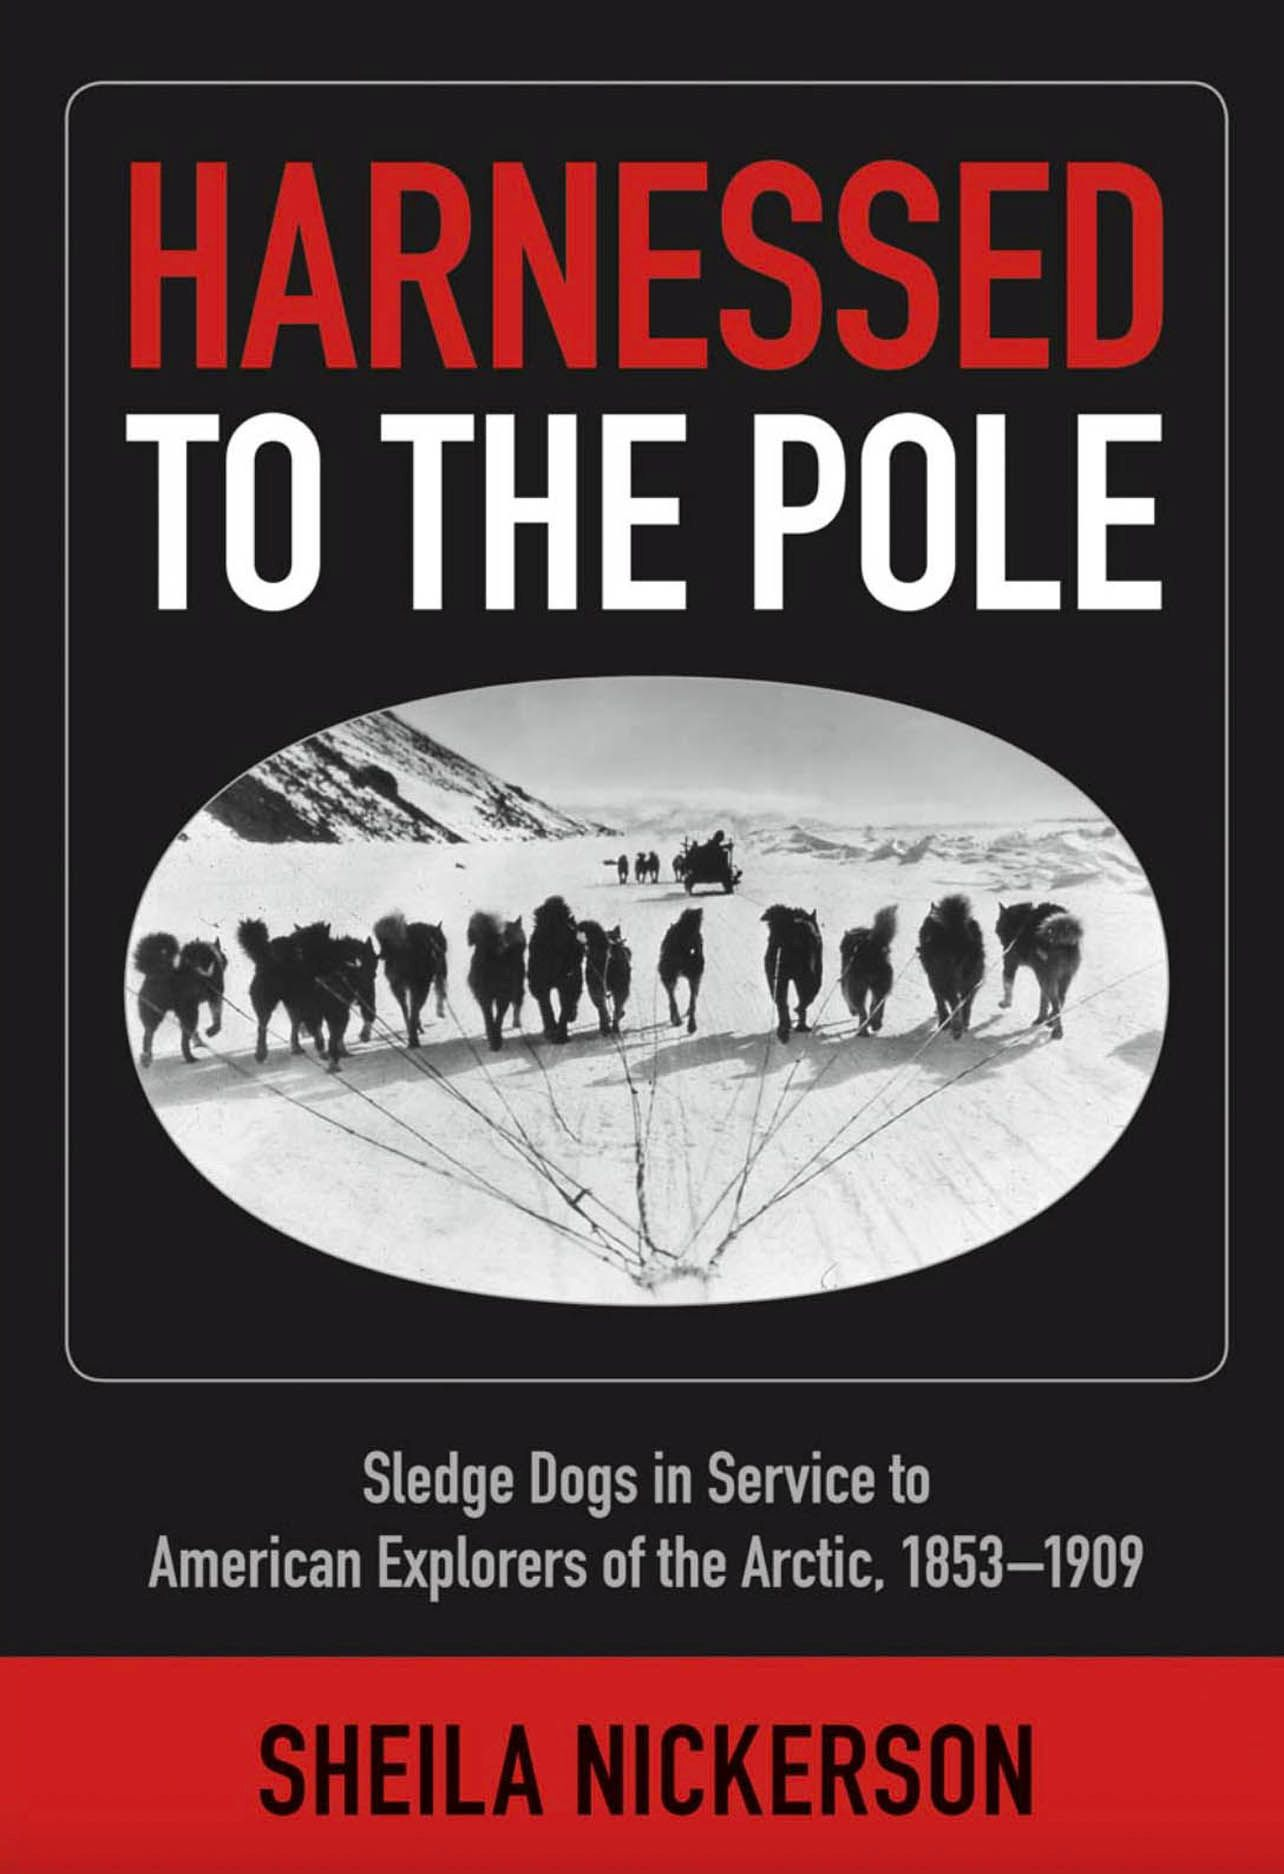 Harnessed to the Pole: Sledge Dogs in Service to American Explorers of the Arctic 1853-1909